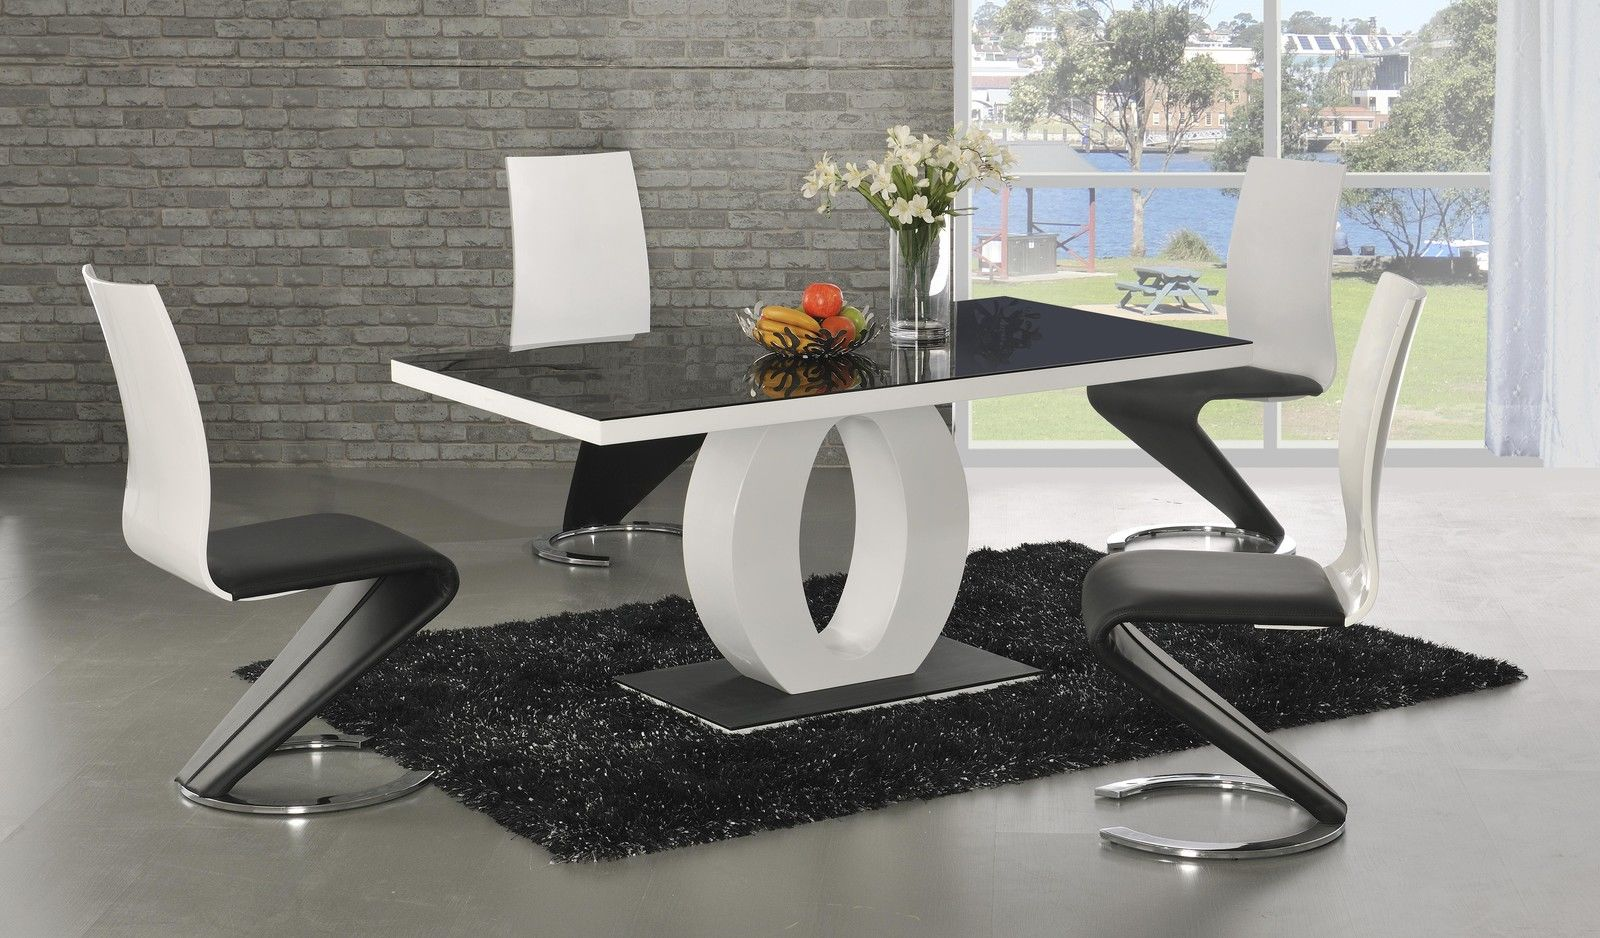 GA Angel Black Glass White Gloss 160 Cm Designer Dining Set 4 6 Z Swish Chairs